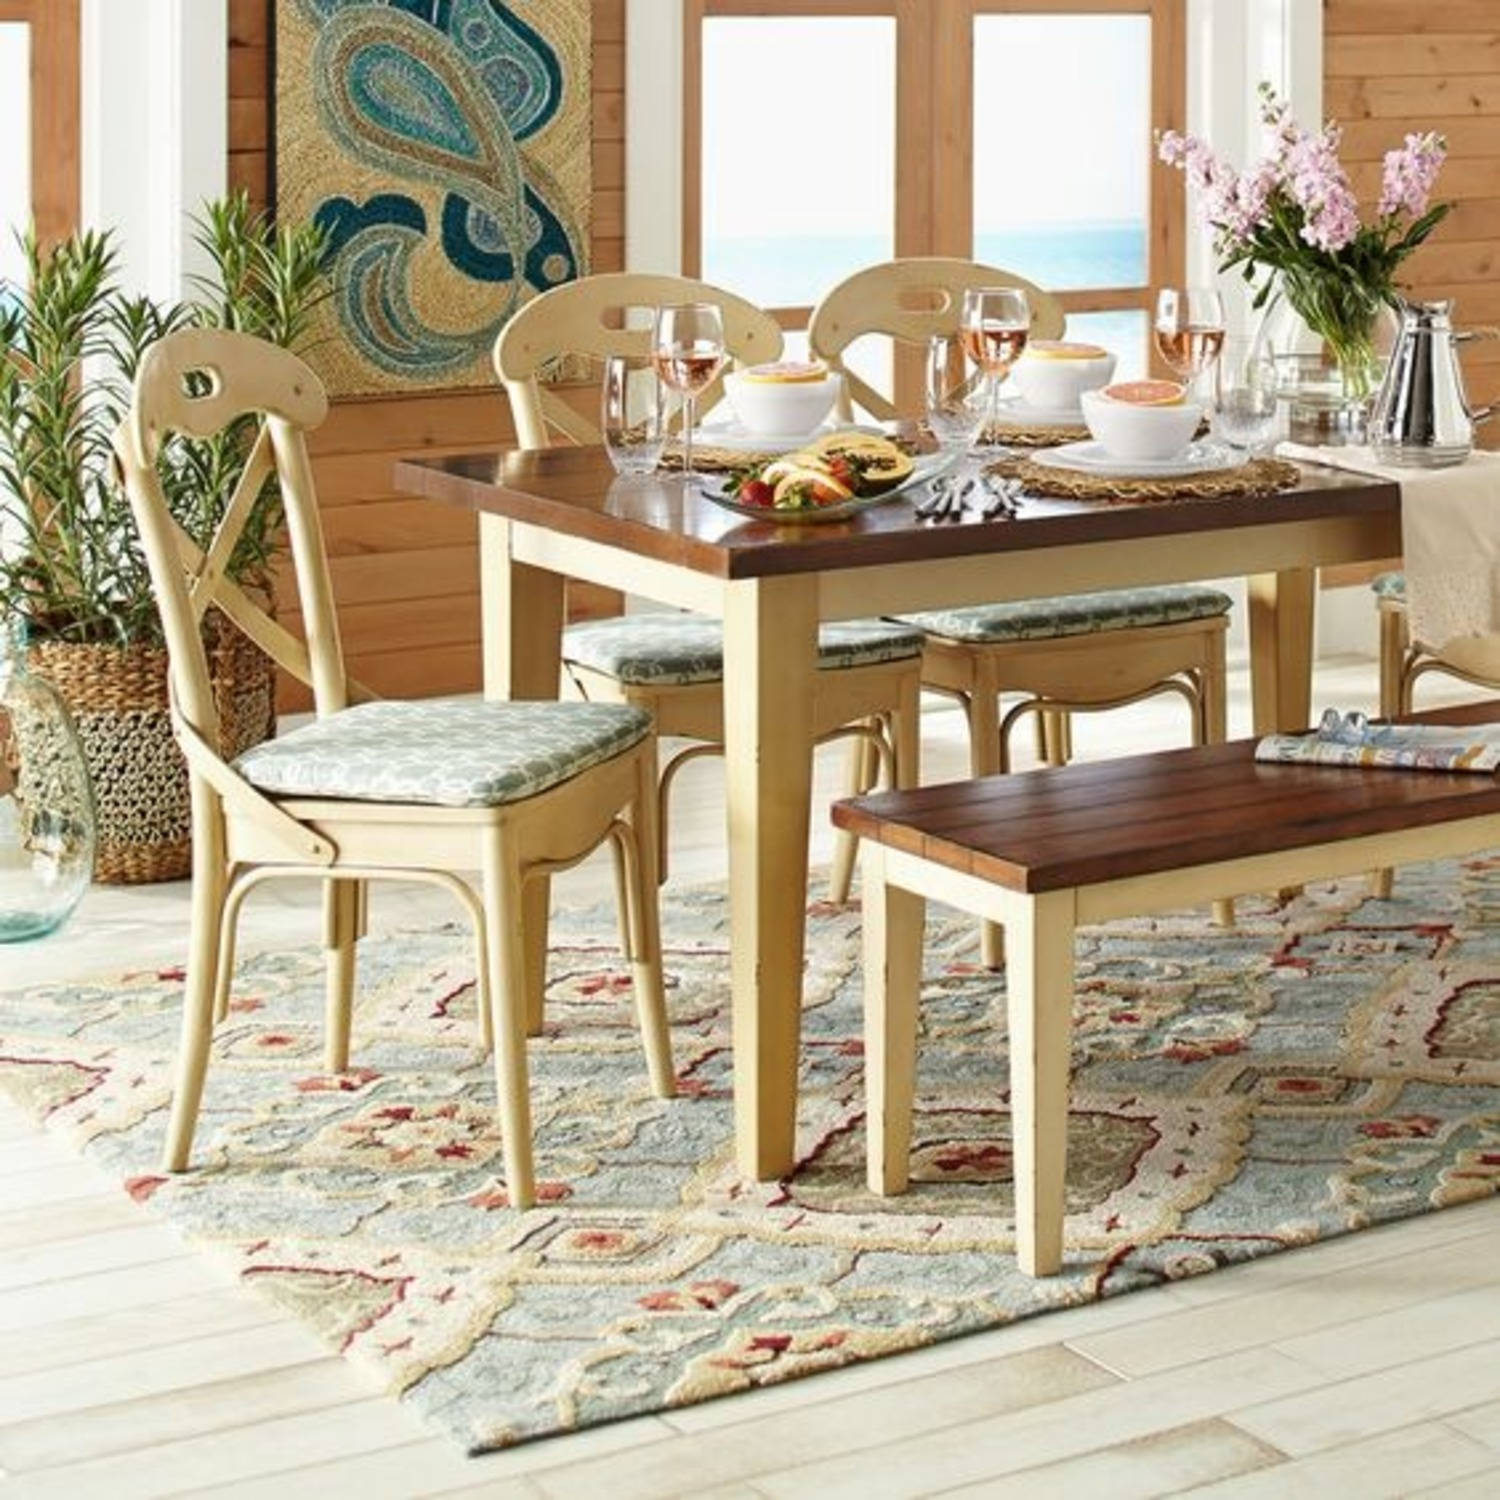 Pier 1 Rustic Dining Table